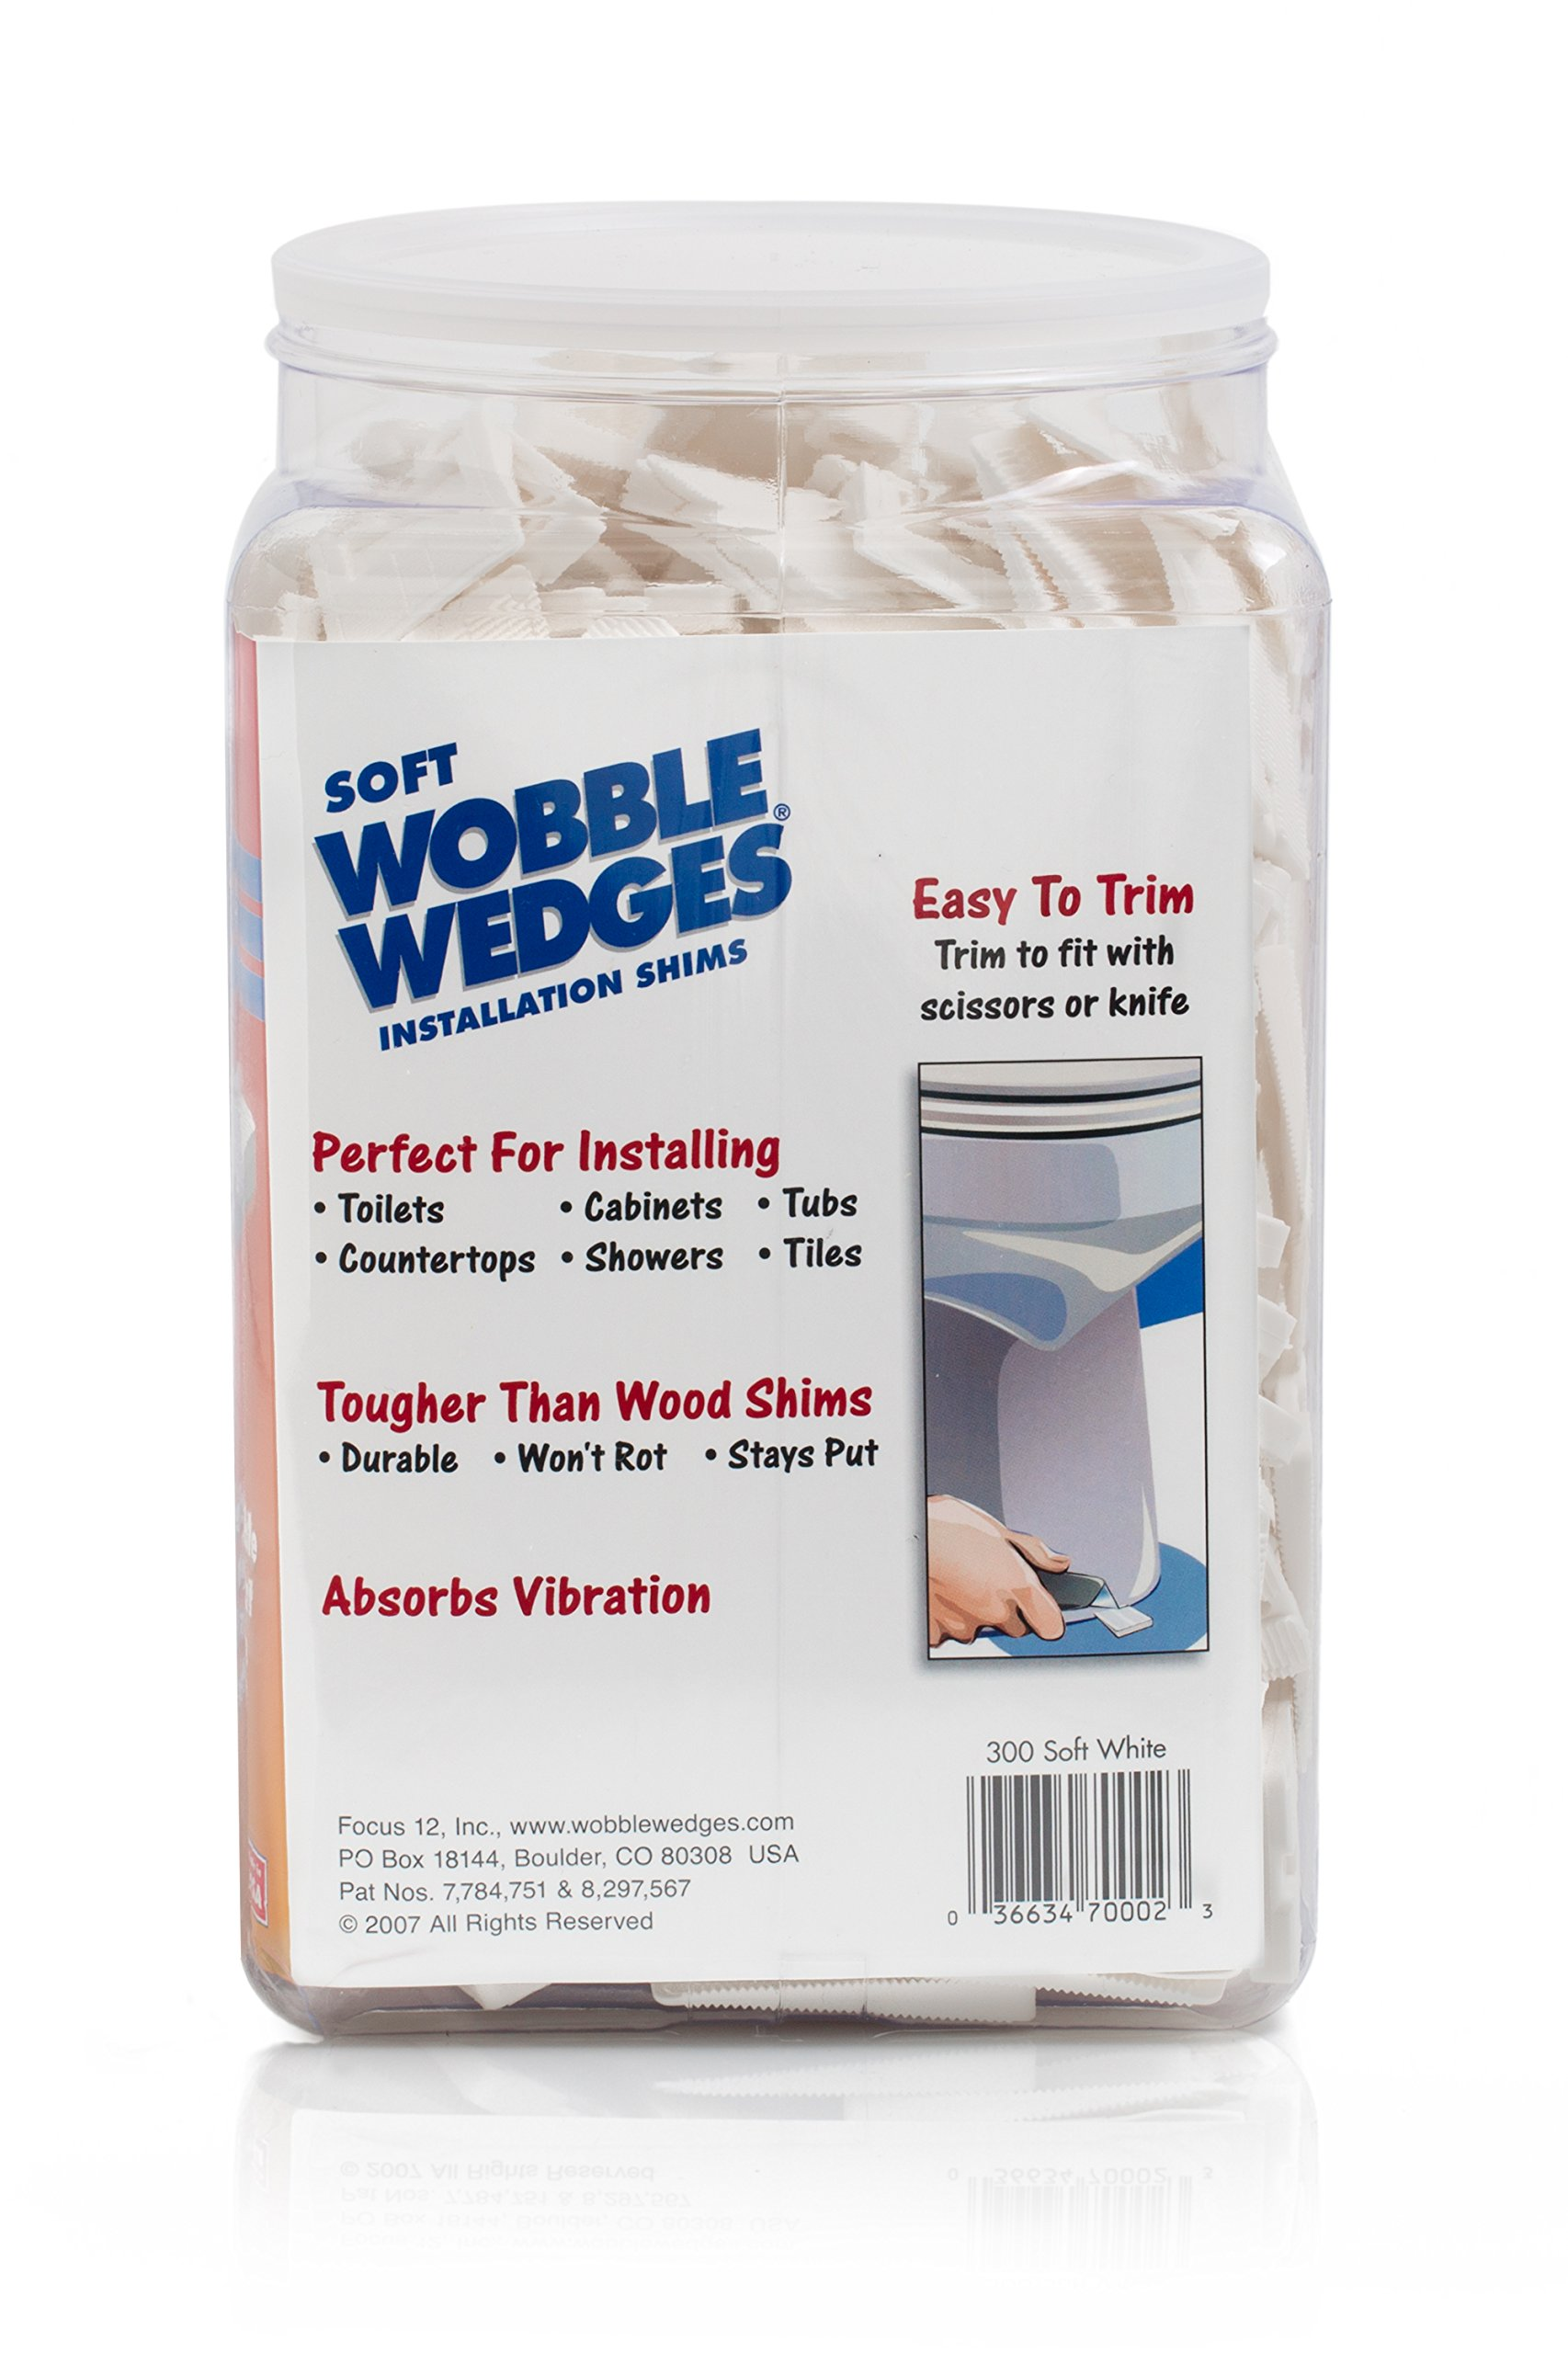 Wobble Wedges Multi-Purpose Shims-Soft White 300 ea -Easy Trim -Protect Delicate Surfaces -Level Household Furniture and Plumbing Fixtures -Stop rattling pipes -Use as Clamping Pad on Angled Surface by WOBBLE WEDGES (Image #2)